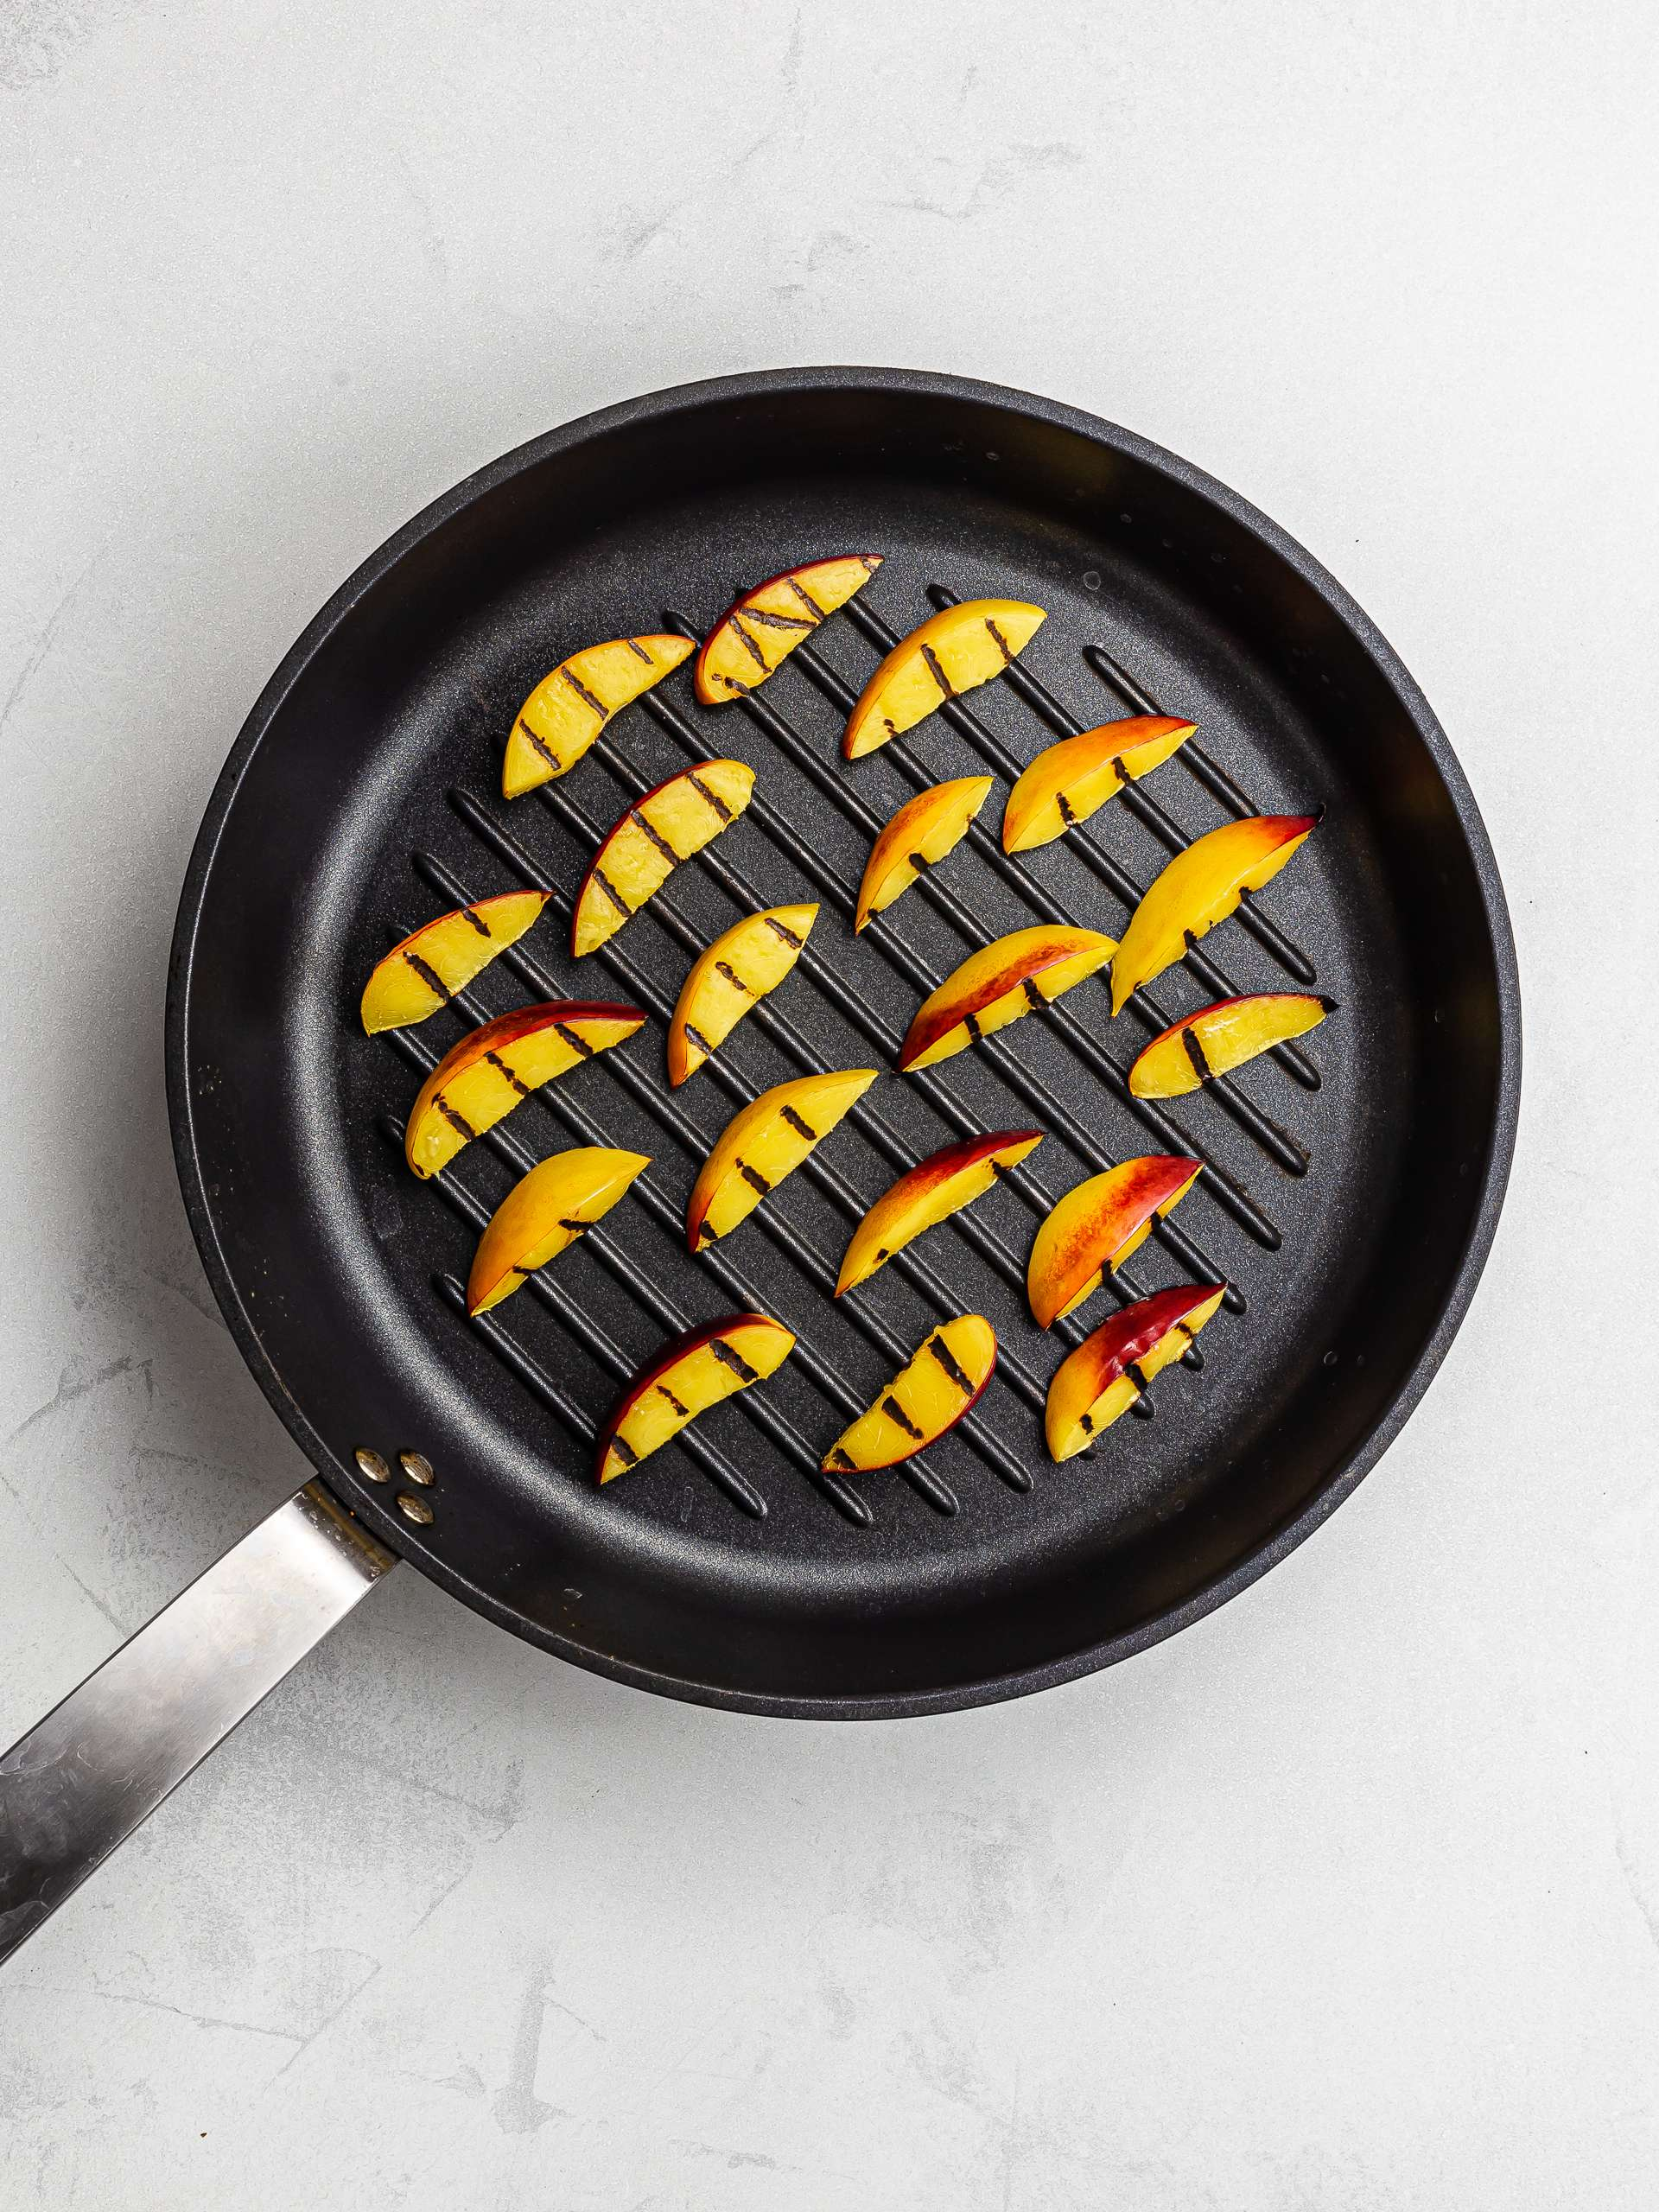 grilled peach wedges